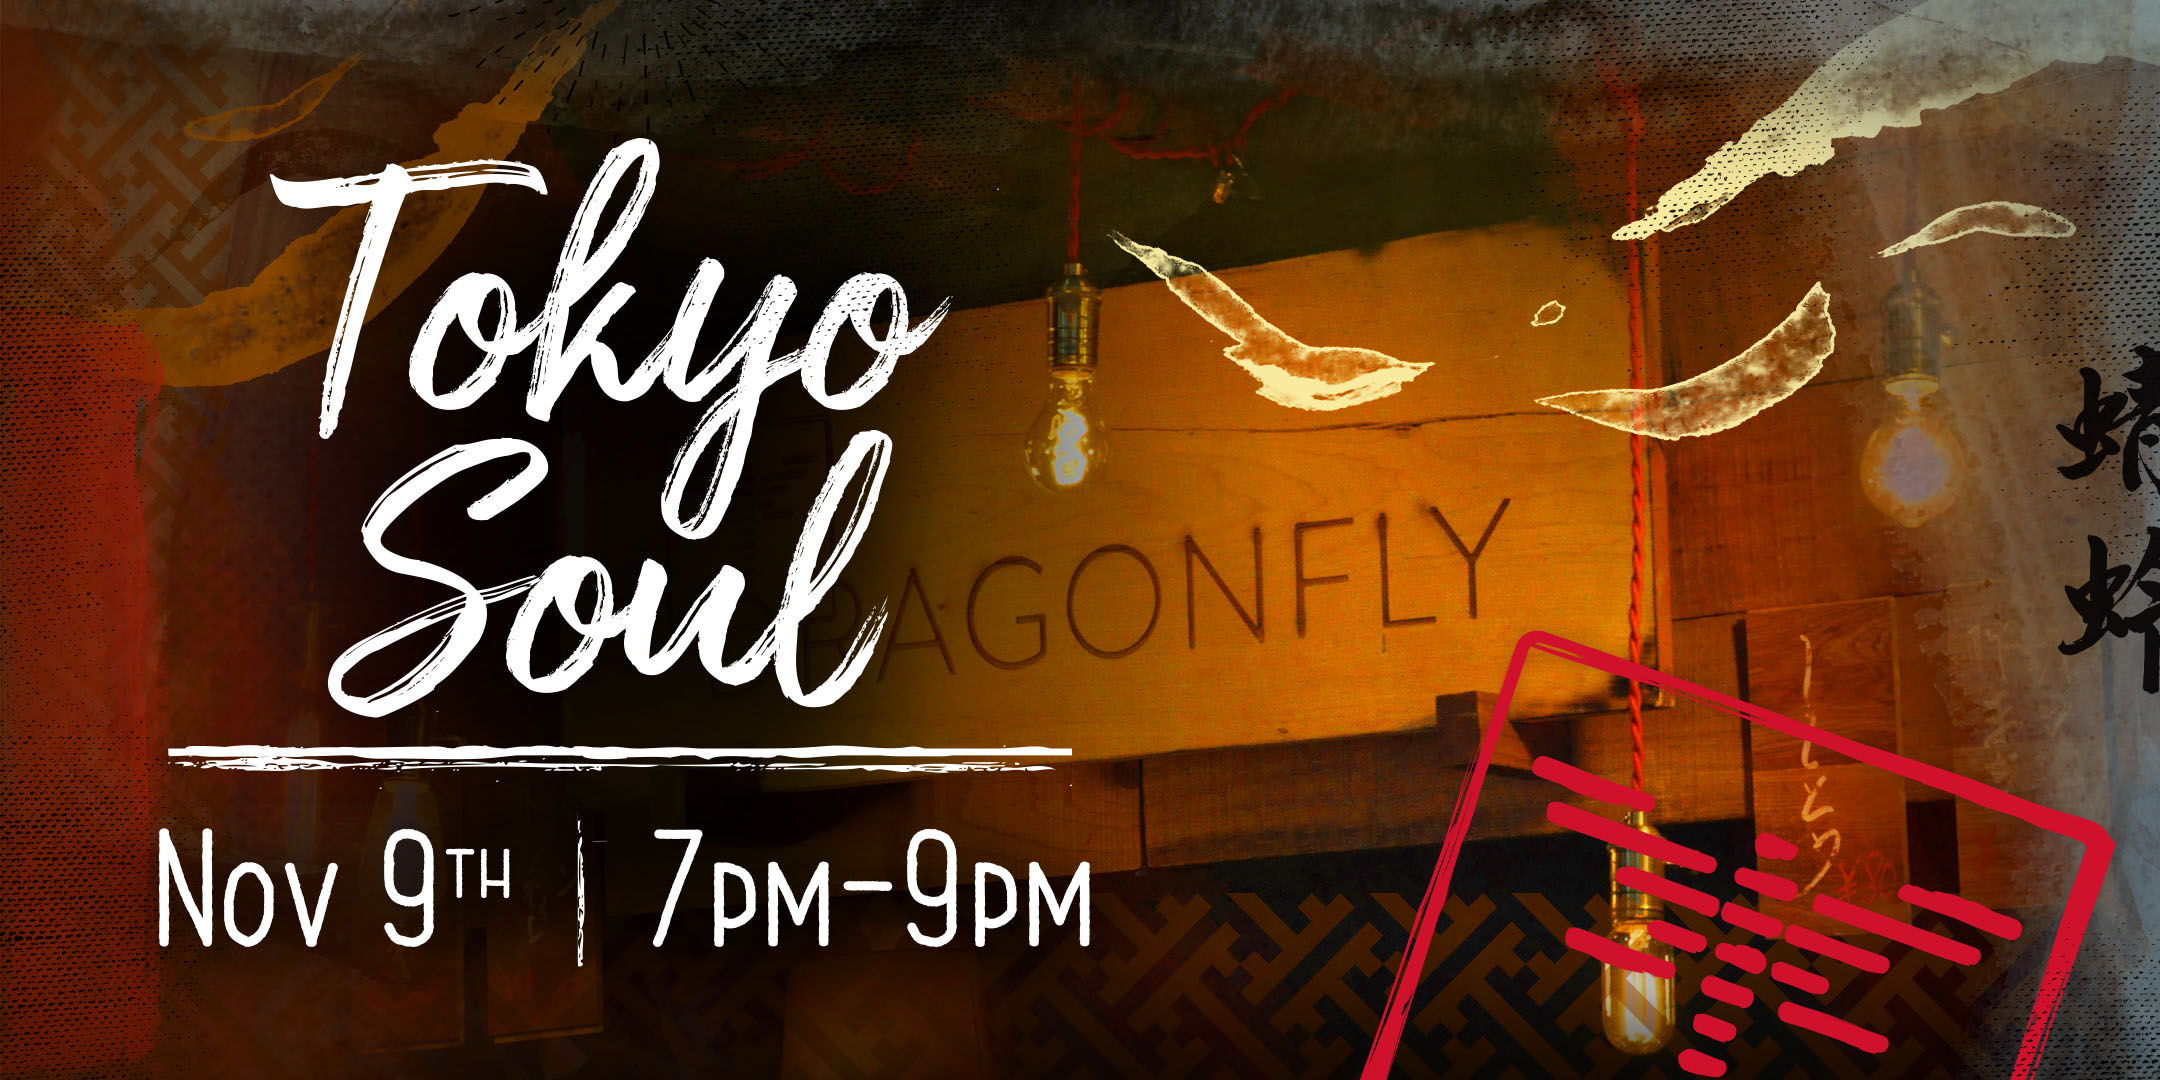 Tokyo soul is a Dragonfly Dinner event that incorporates sushi, robata, and soul food into a family style dinner.